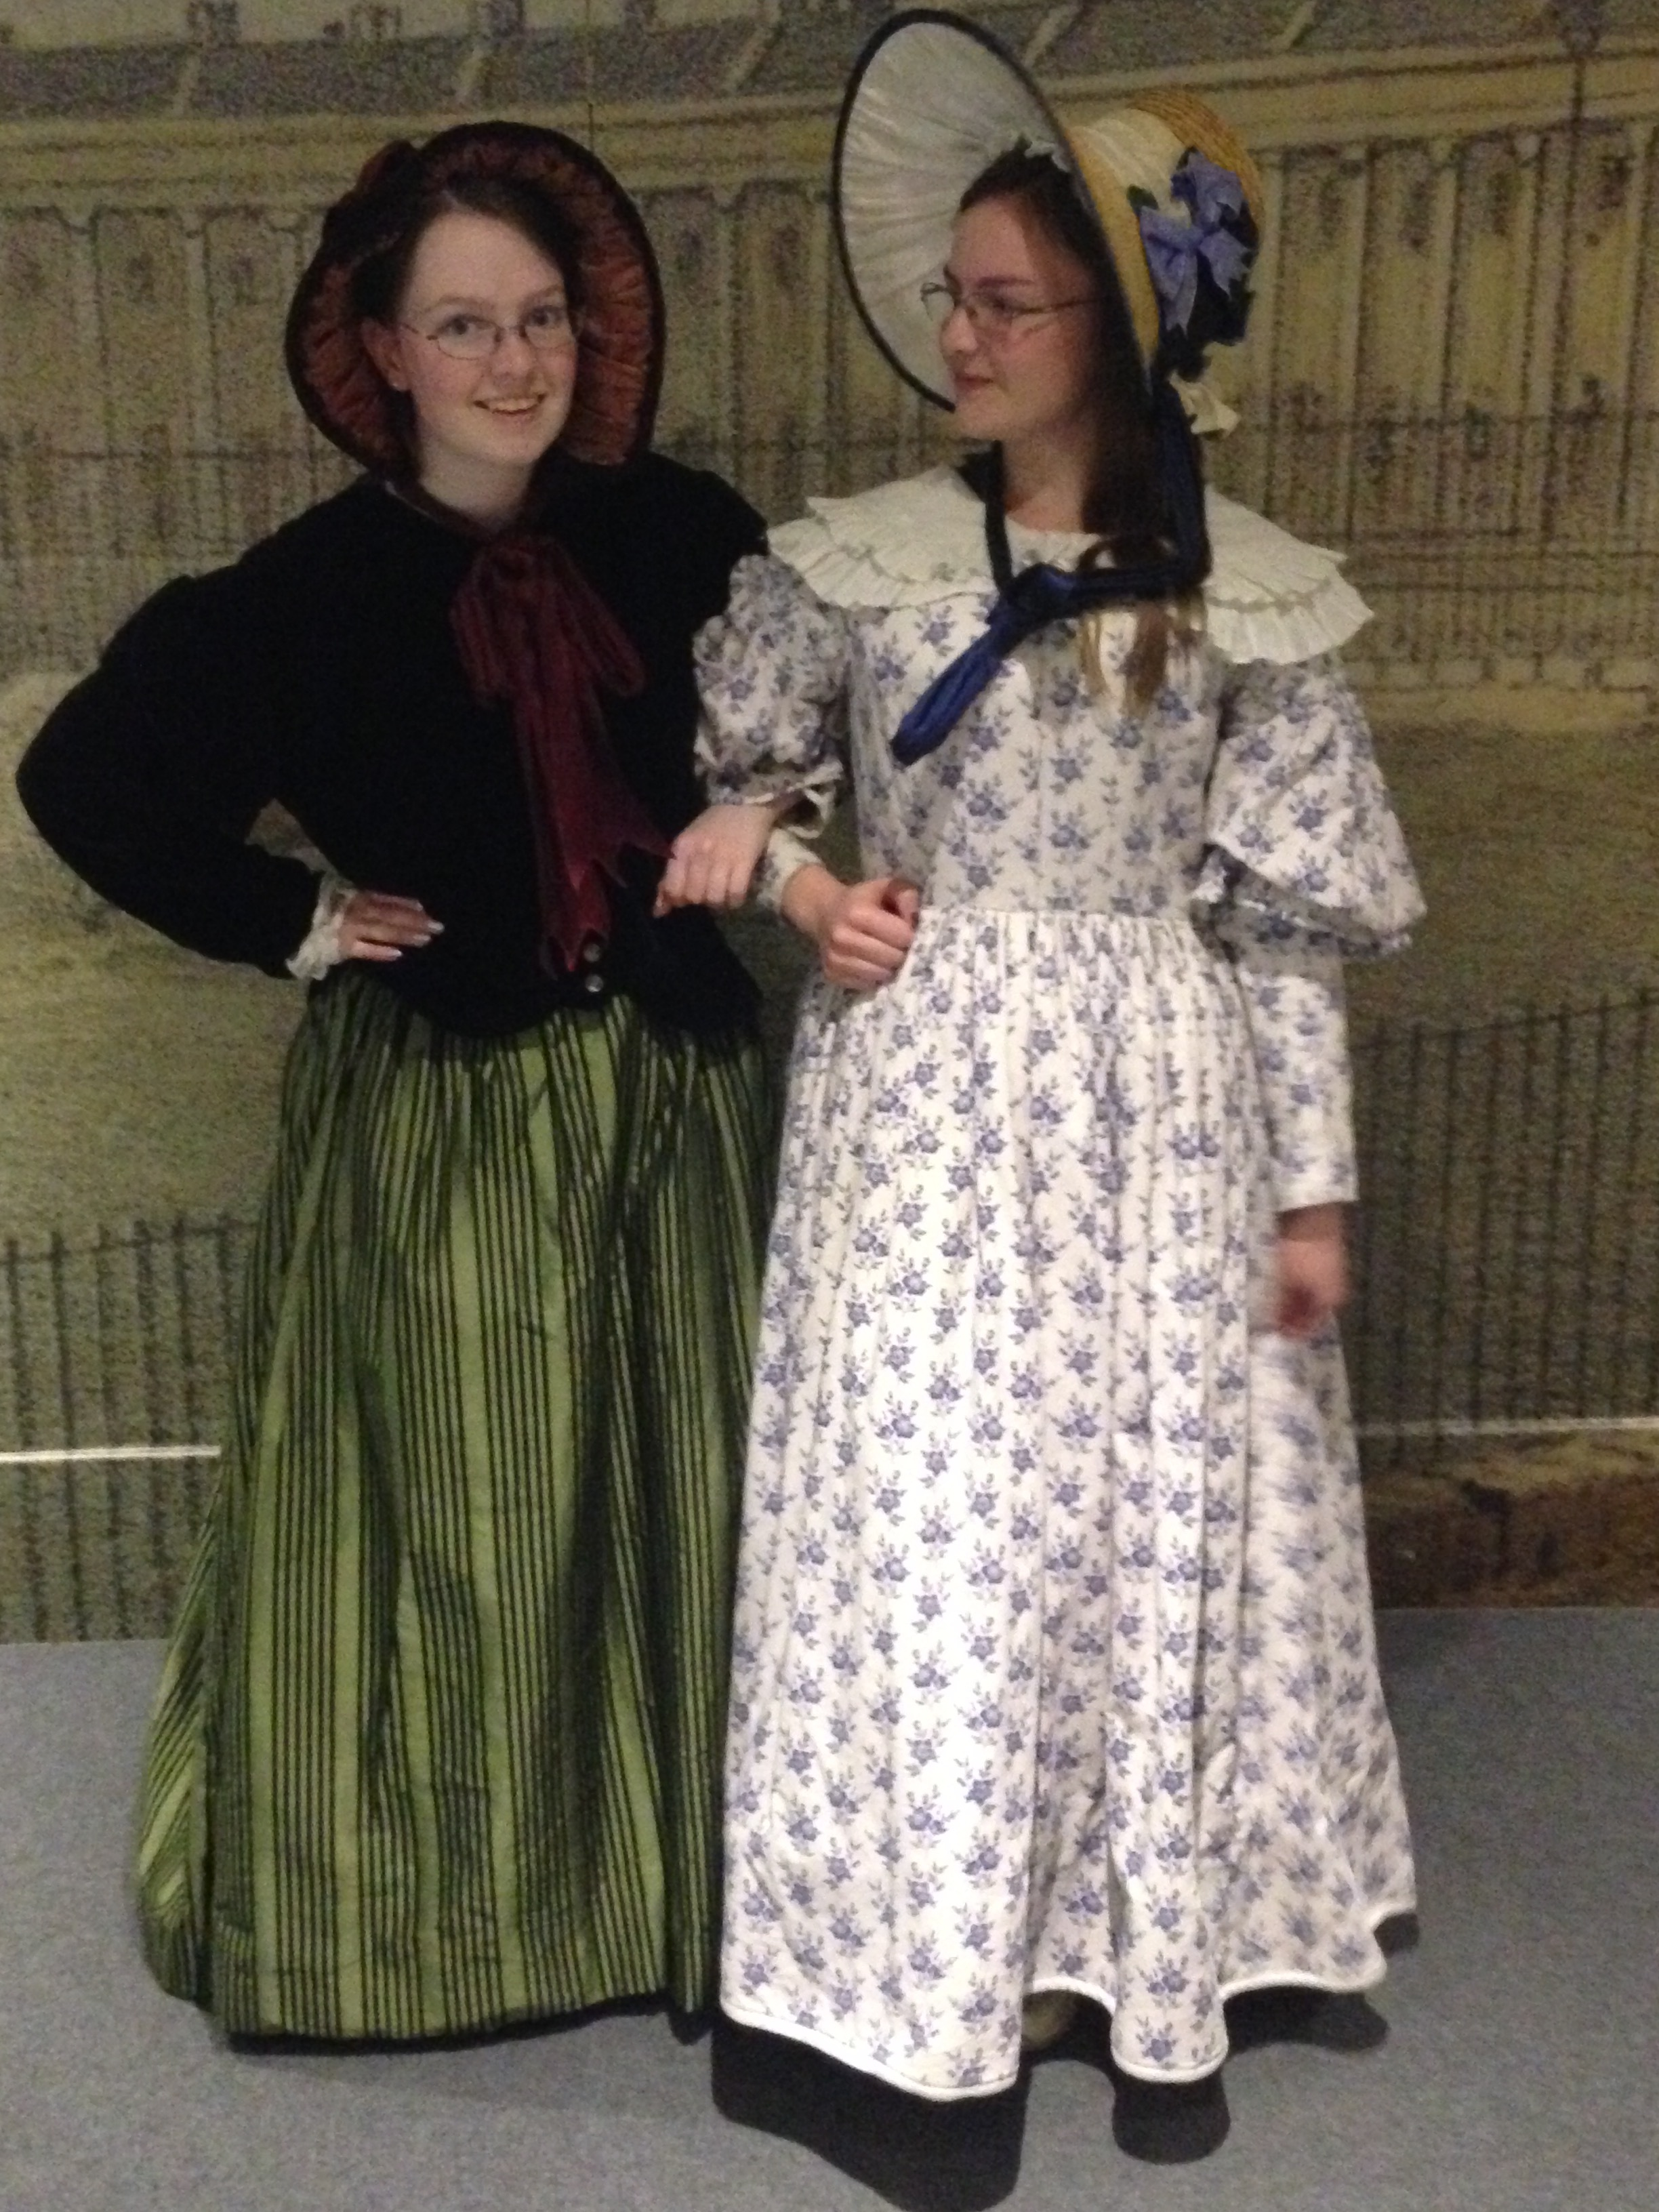 Me in a 19th-century costume, with my sister also in a 19th-century costume.